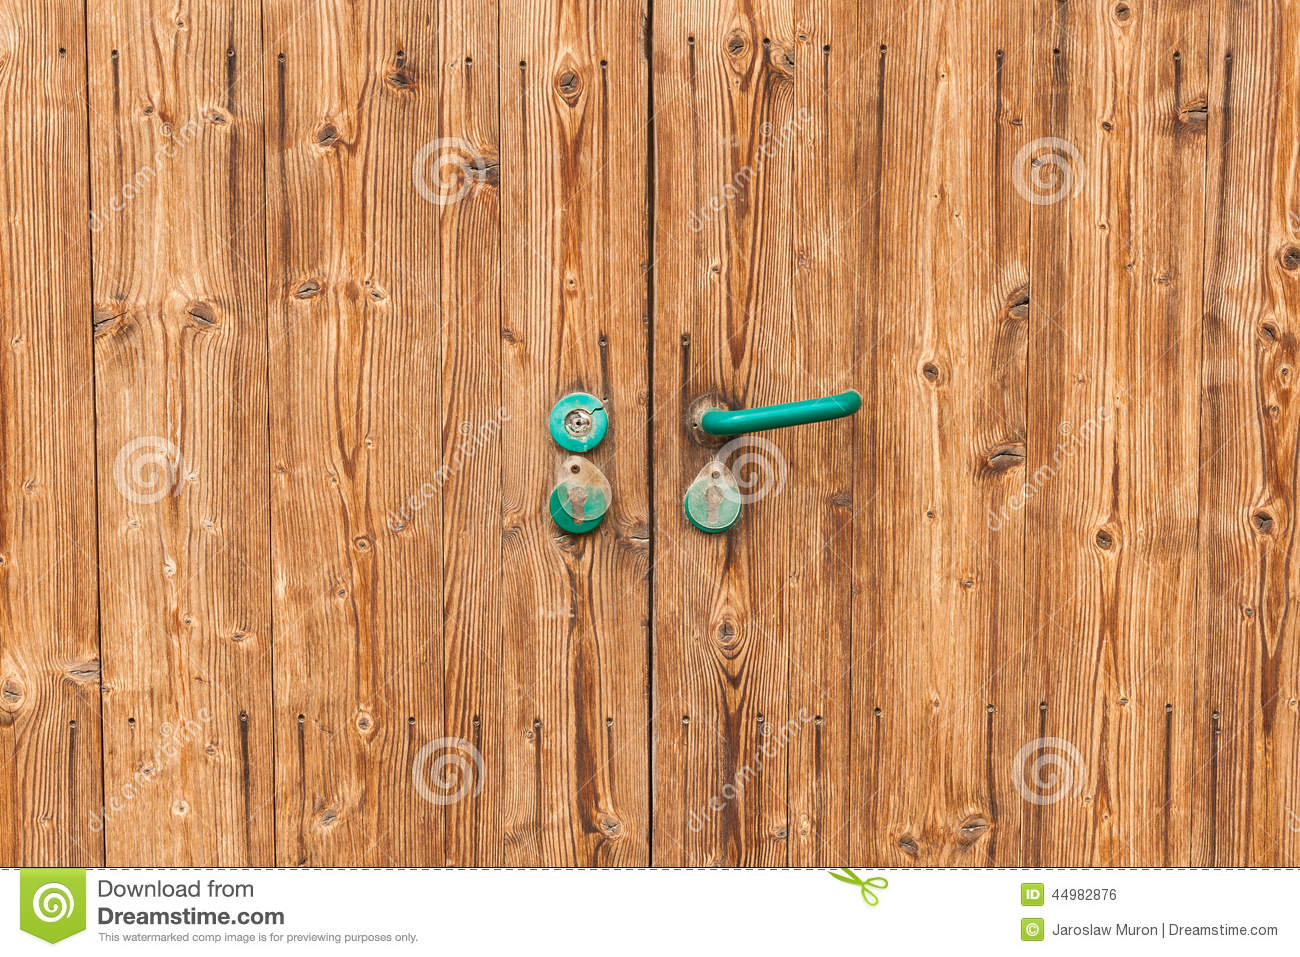 957 #128B72 Wooden Rustic Door Stock Photo Image: 44982876 image Rustic Wooden Doors 39531300